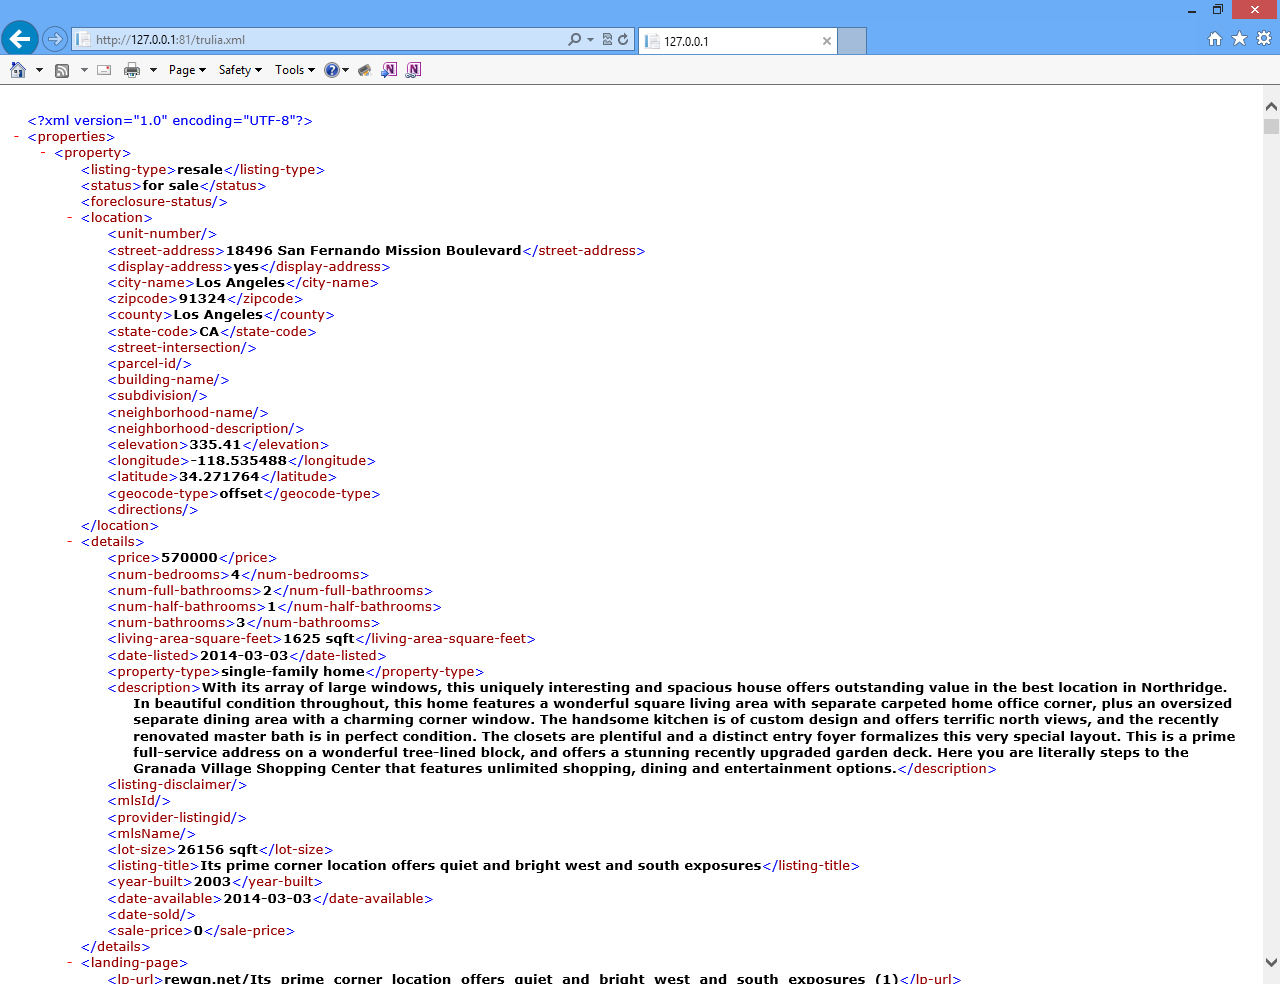 A screenshot of the Trulia XML feed in the Boötes Real Estate Listing Management System